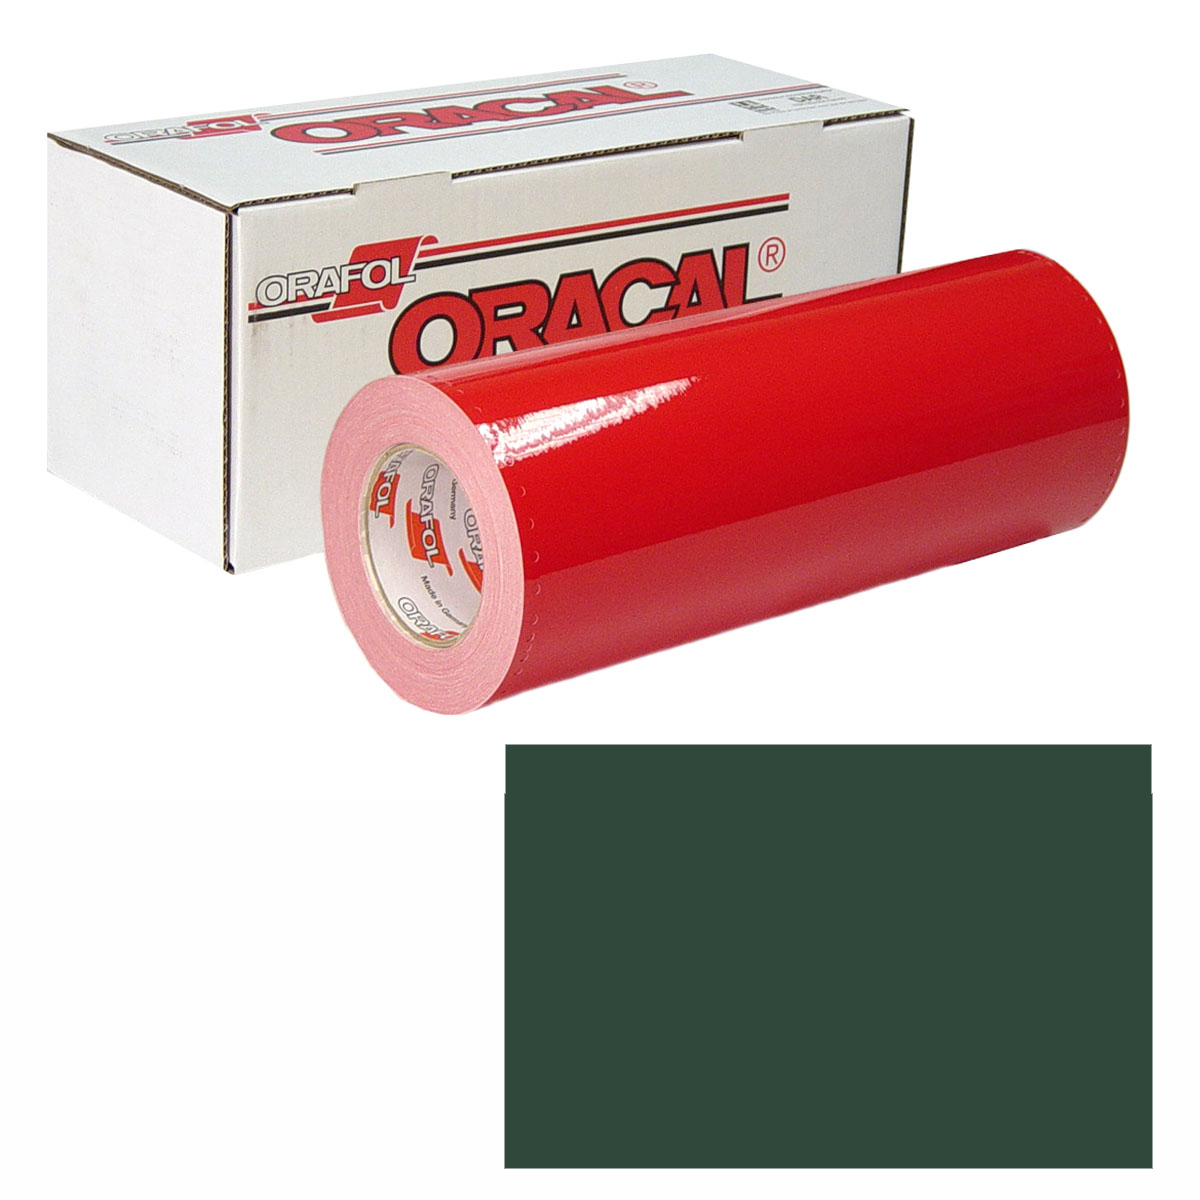 ORACAL 951M 30In X 10Yd 677 Fir Green